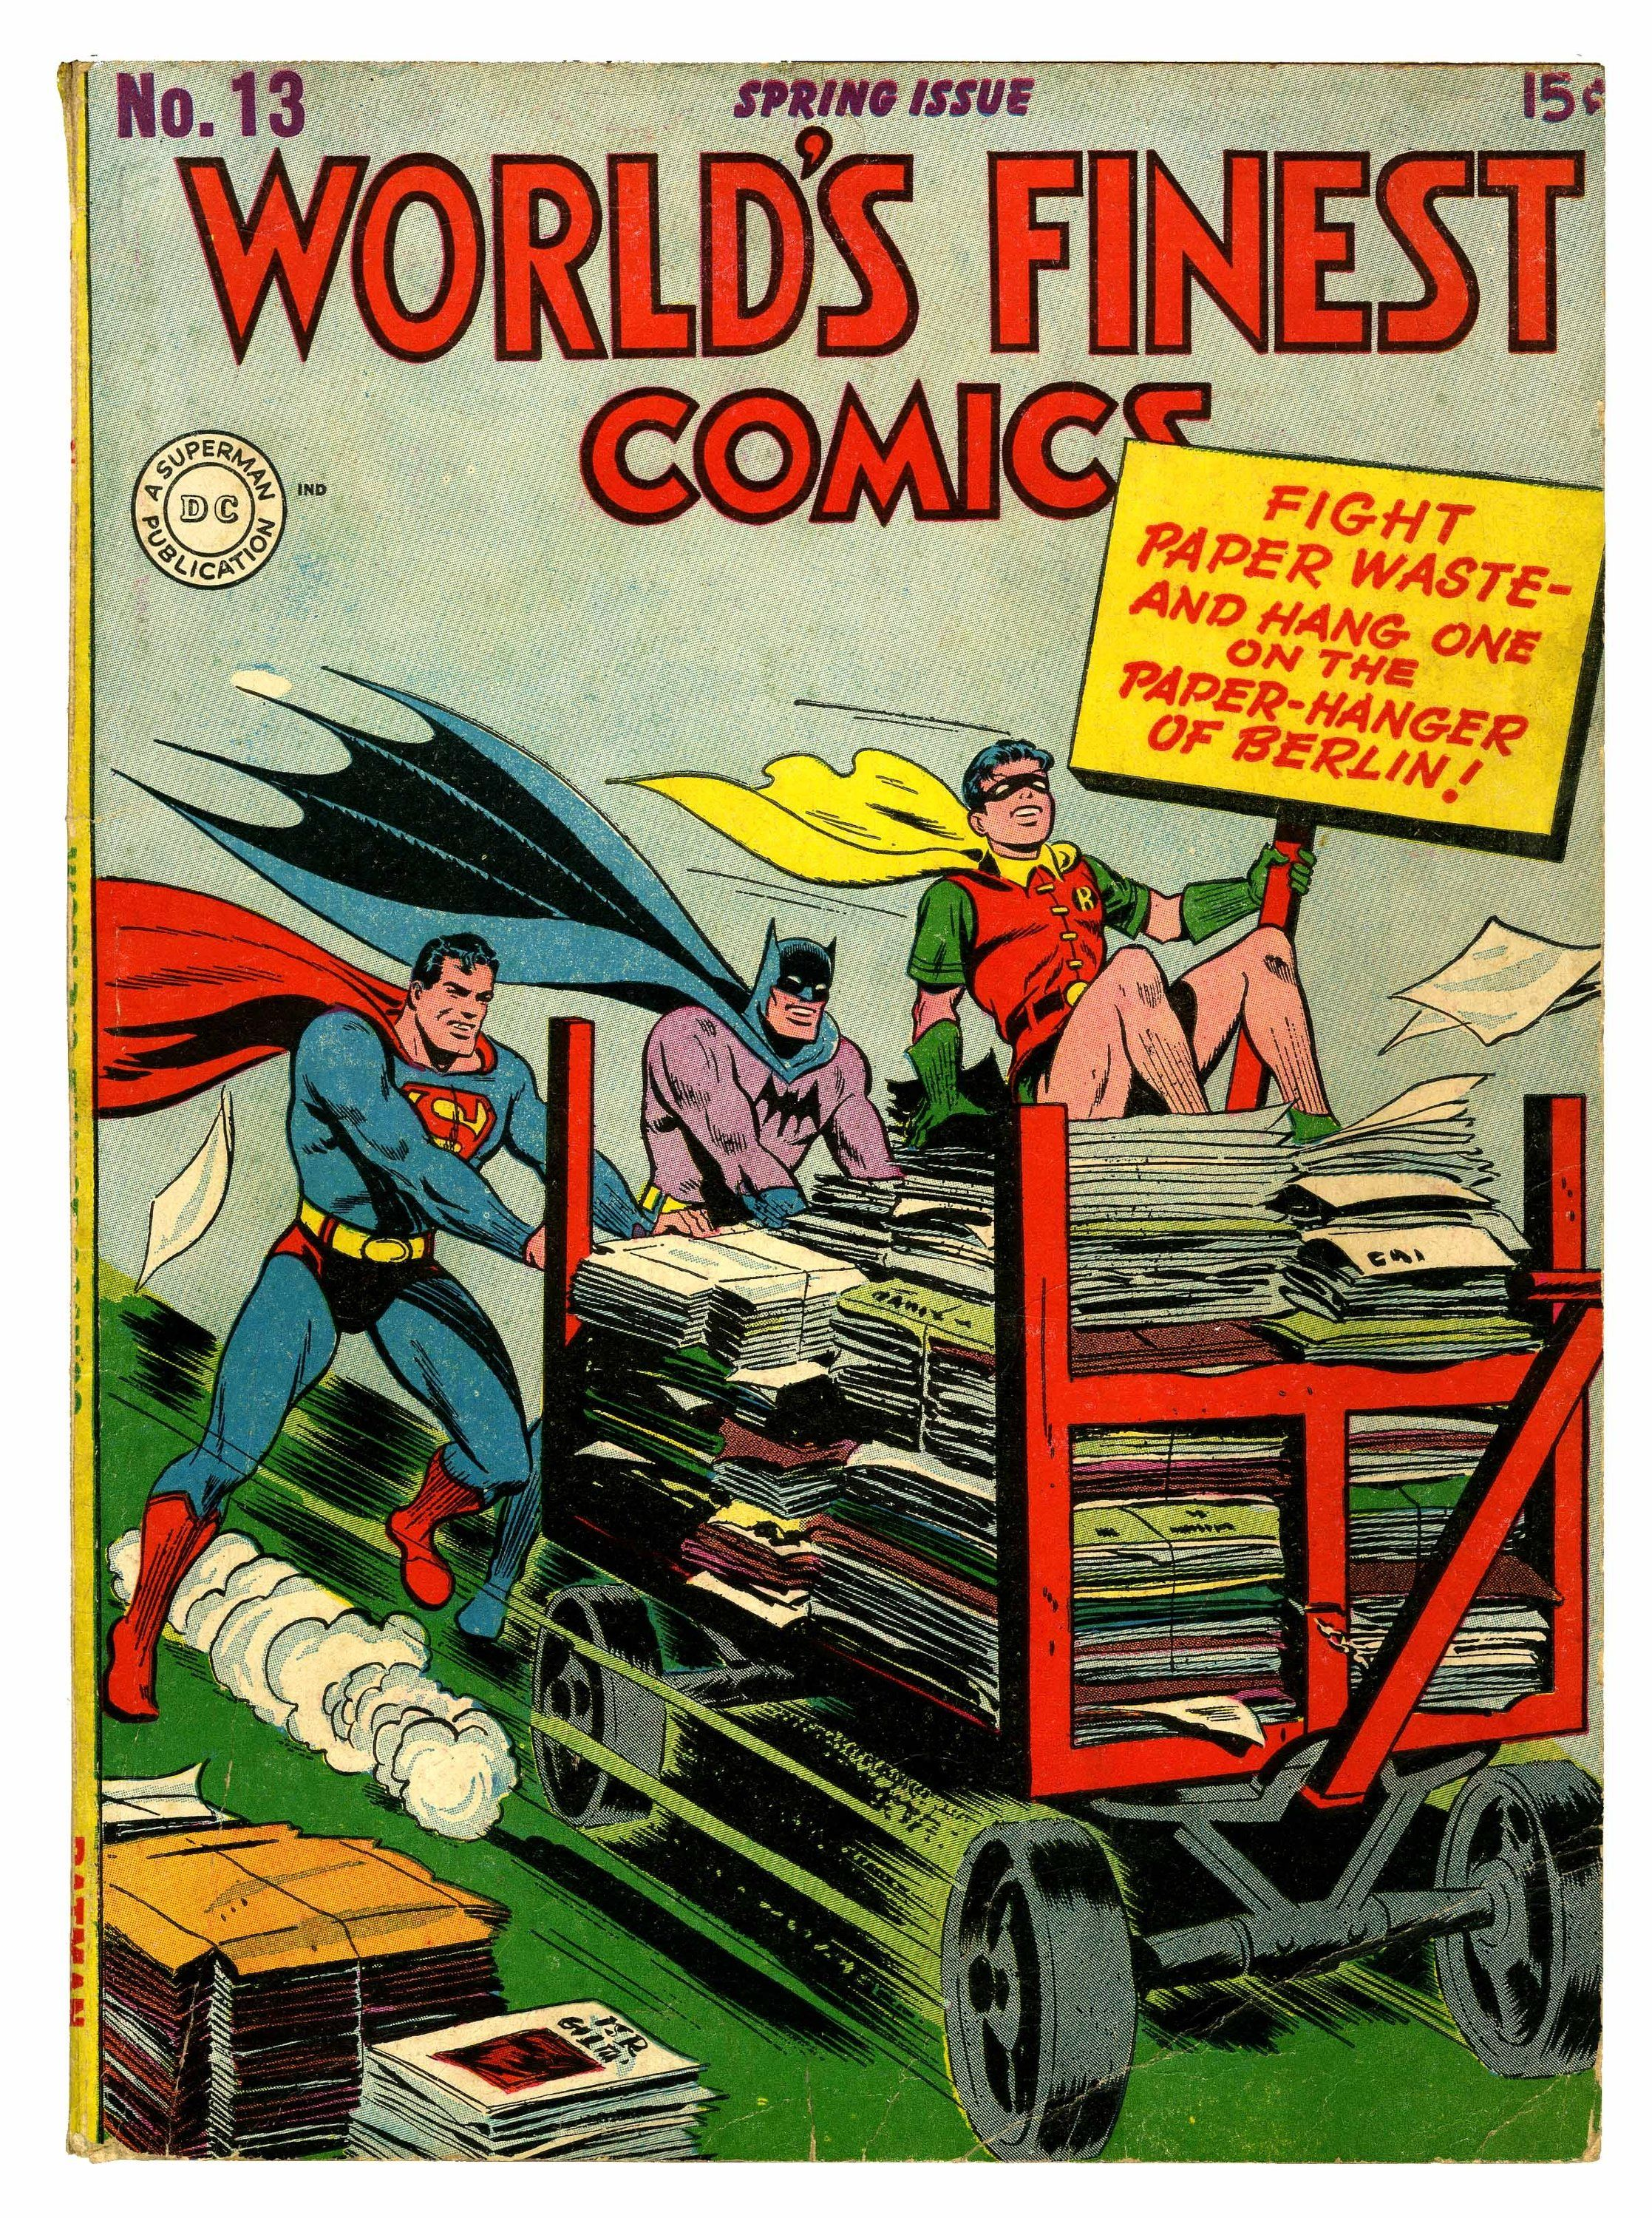 1944 - Before our comic book heroes\' values were replaced with ...